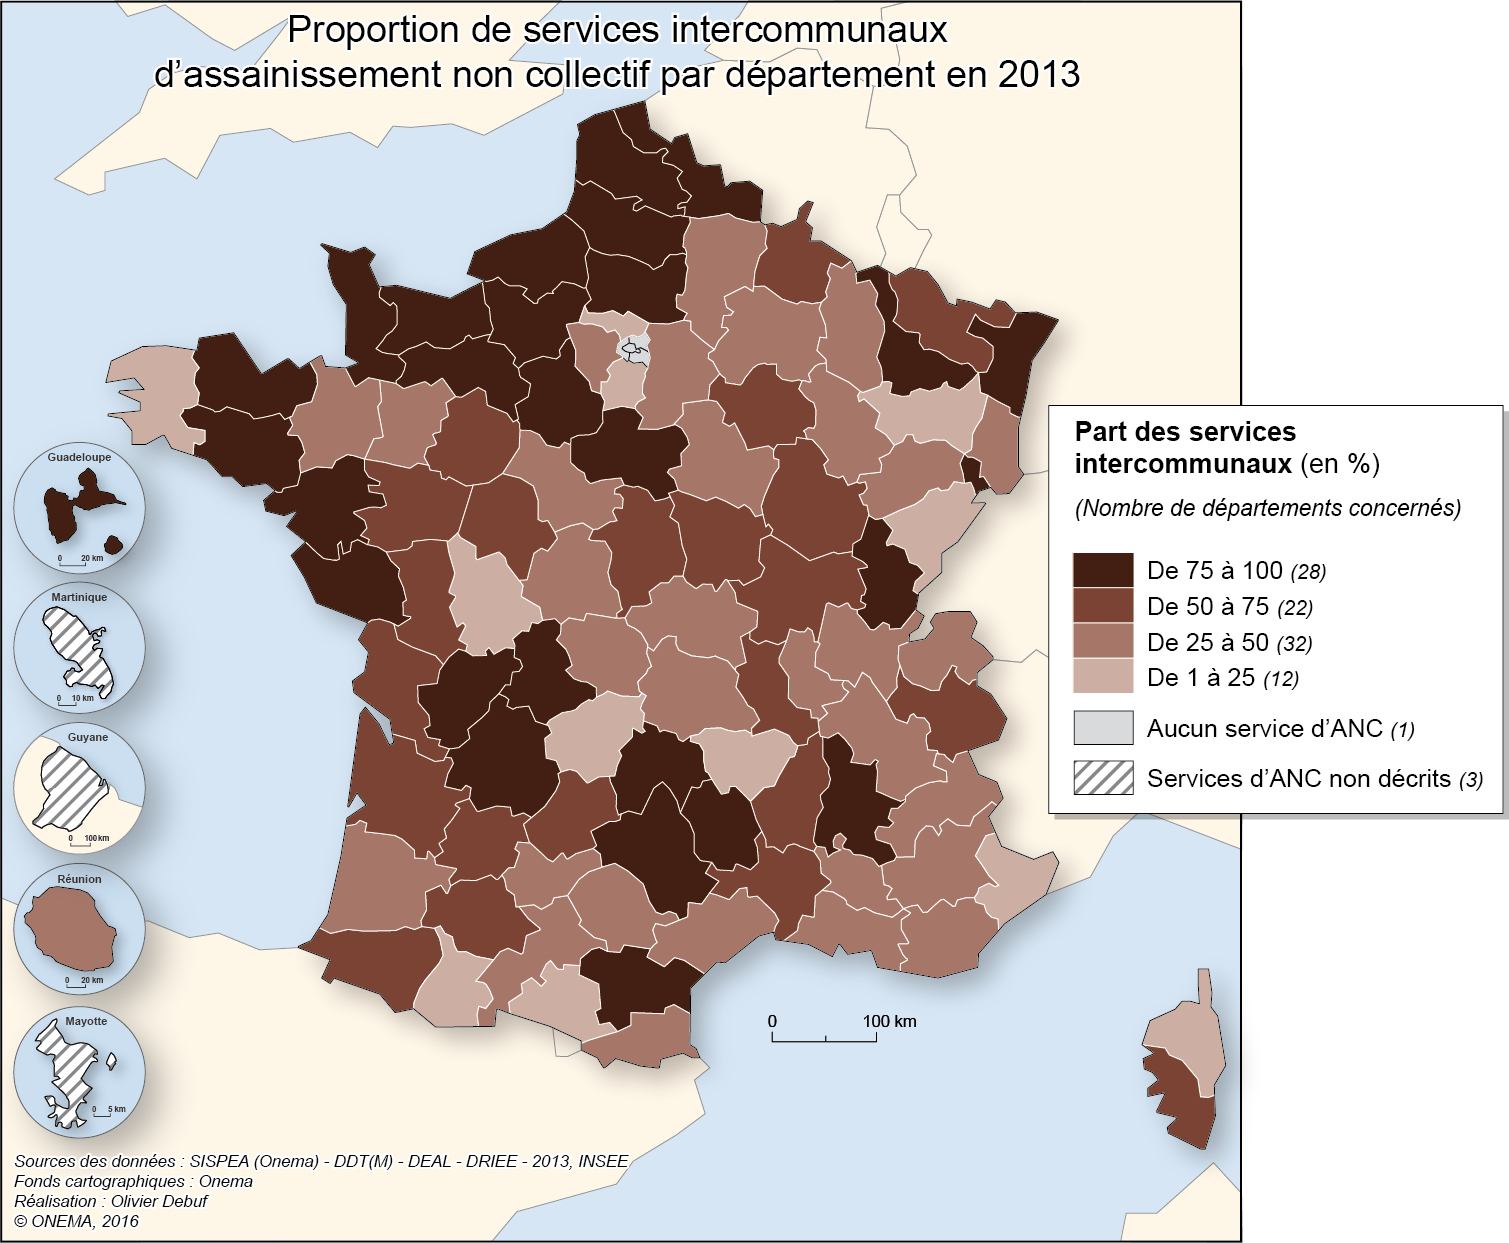 2)	Proportion de services intercommunaux d'assainissement non collectif en 2013